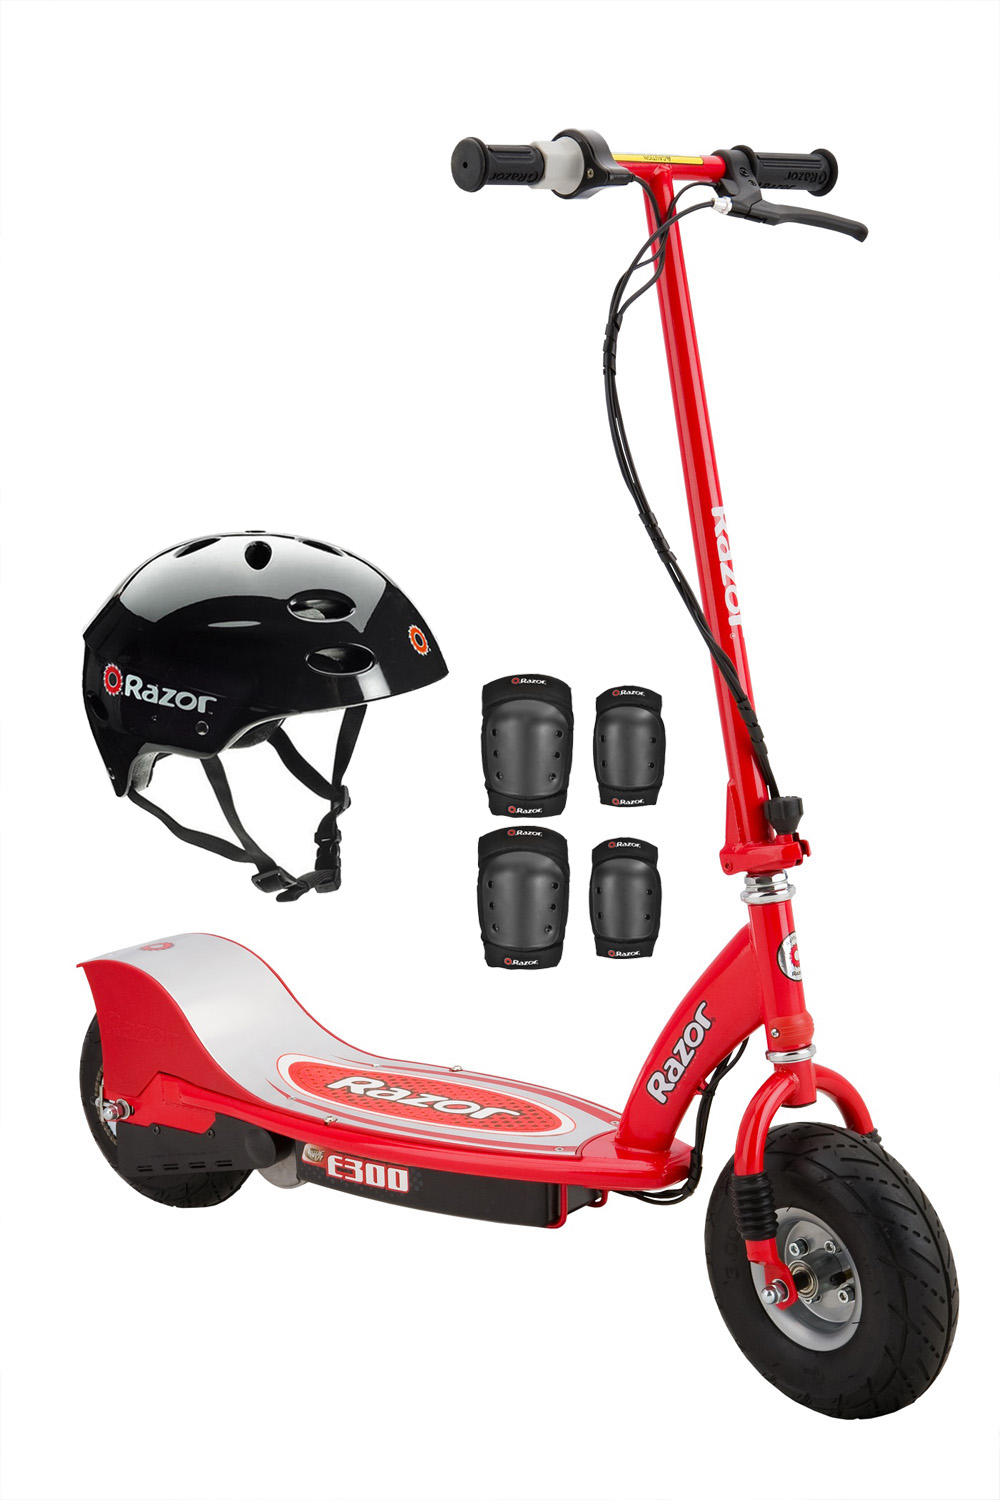 Razor E300 Electric 24-Volt Motorized Ride-On Kids Scooter with Helmet and Pads by Razor